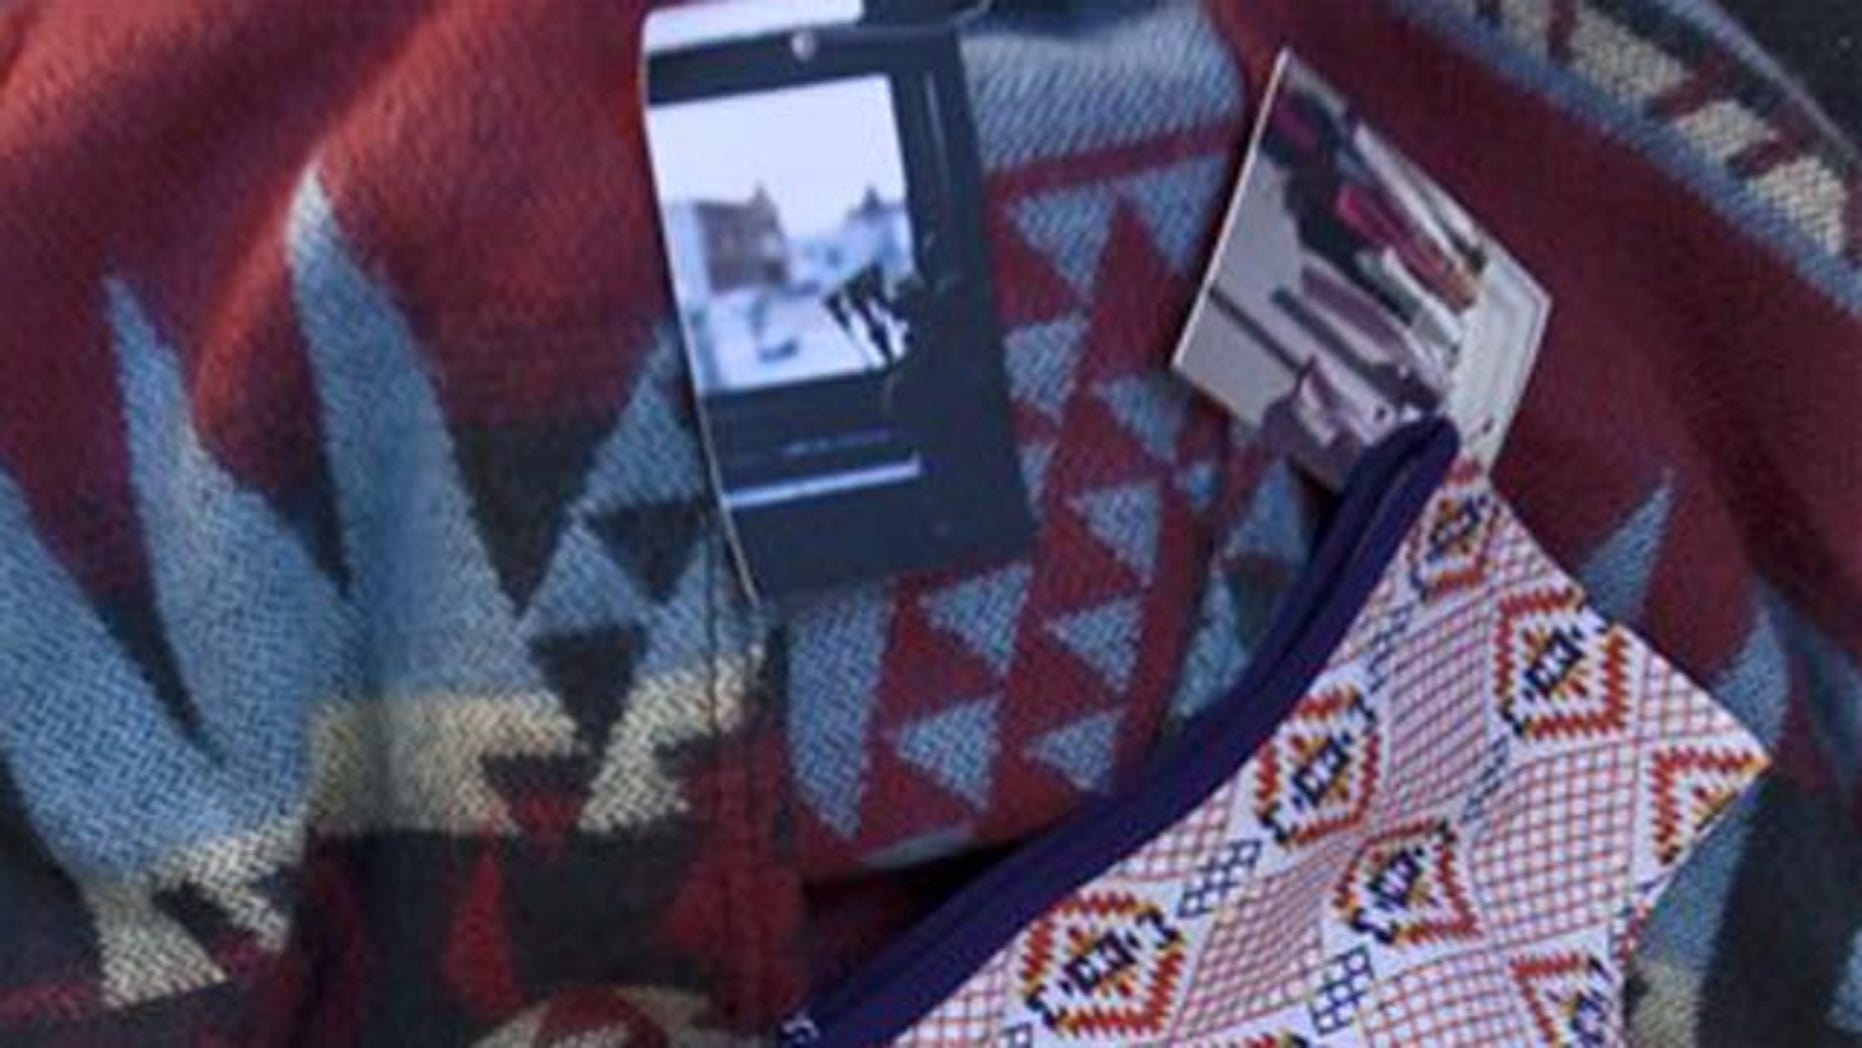 Oct. 14: Purchased items from Urban Outfitters' Navajo line are shown in Tempe, Ariz.